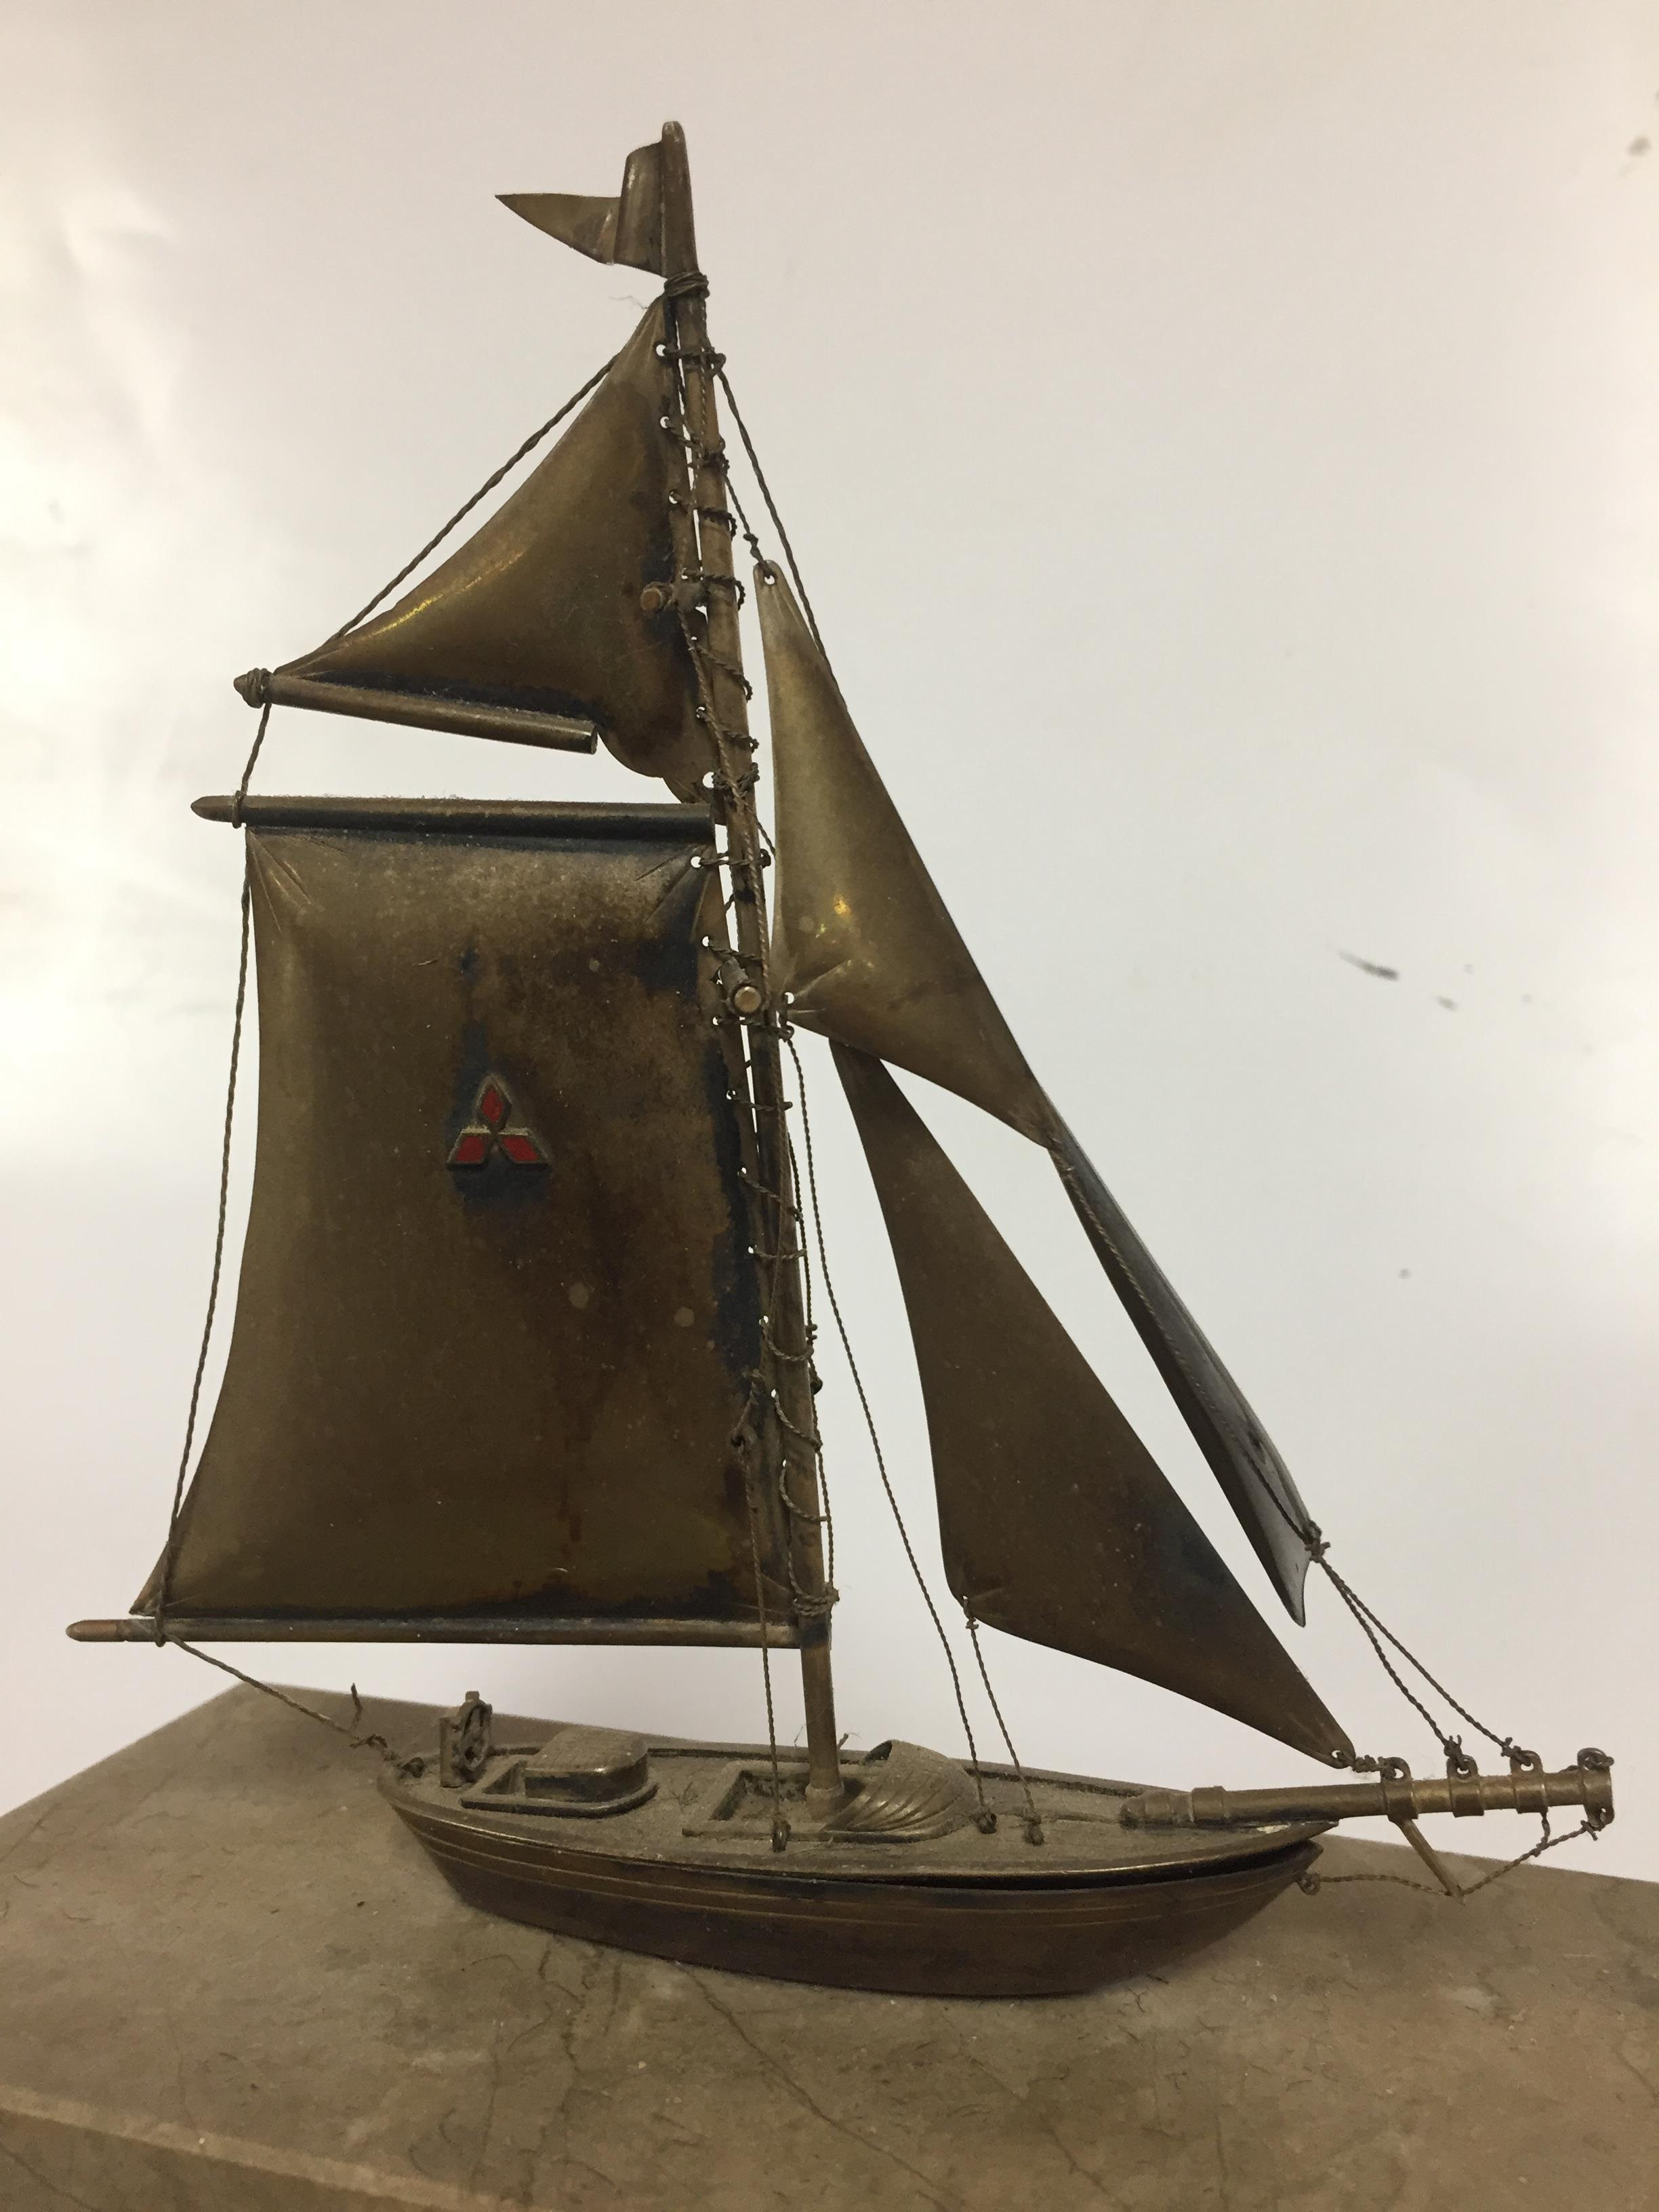 Lot 10 - WHITE METAL MODEL OF SAILING BOAT ON MARBLE AND WOODEN PLINTH BEARING LABEL OKOHAMA SHIPYARD AND